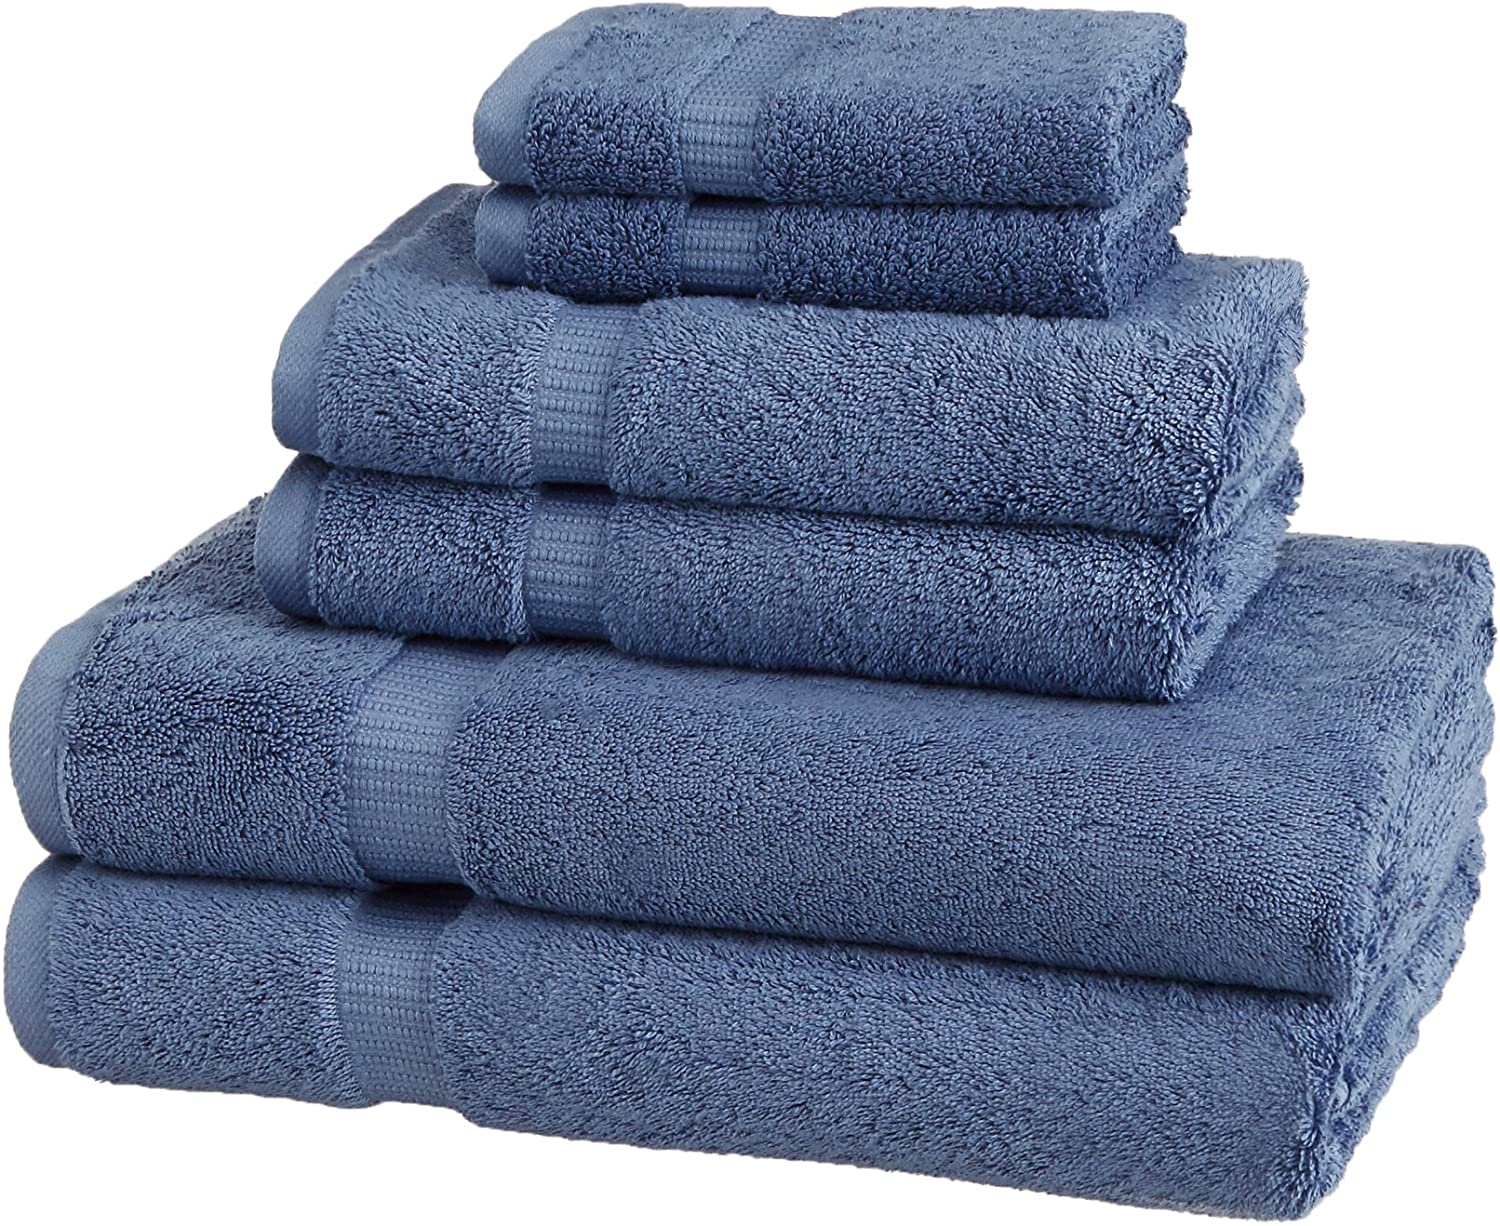 6 Piece Set Latte Tan Pinzon Organic Cotton Bathroom Towels